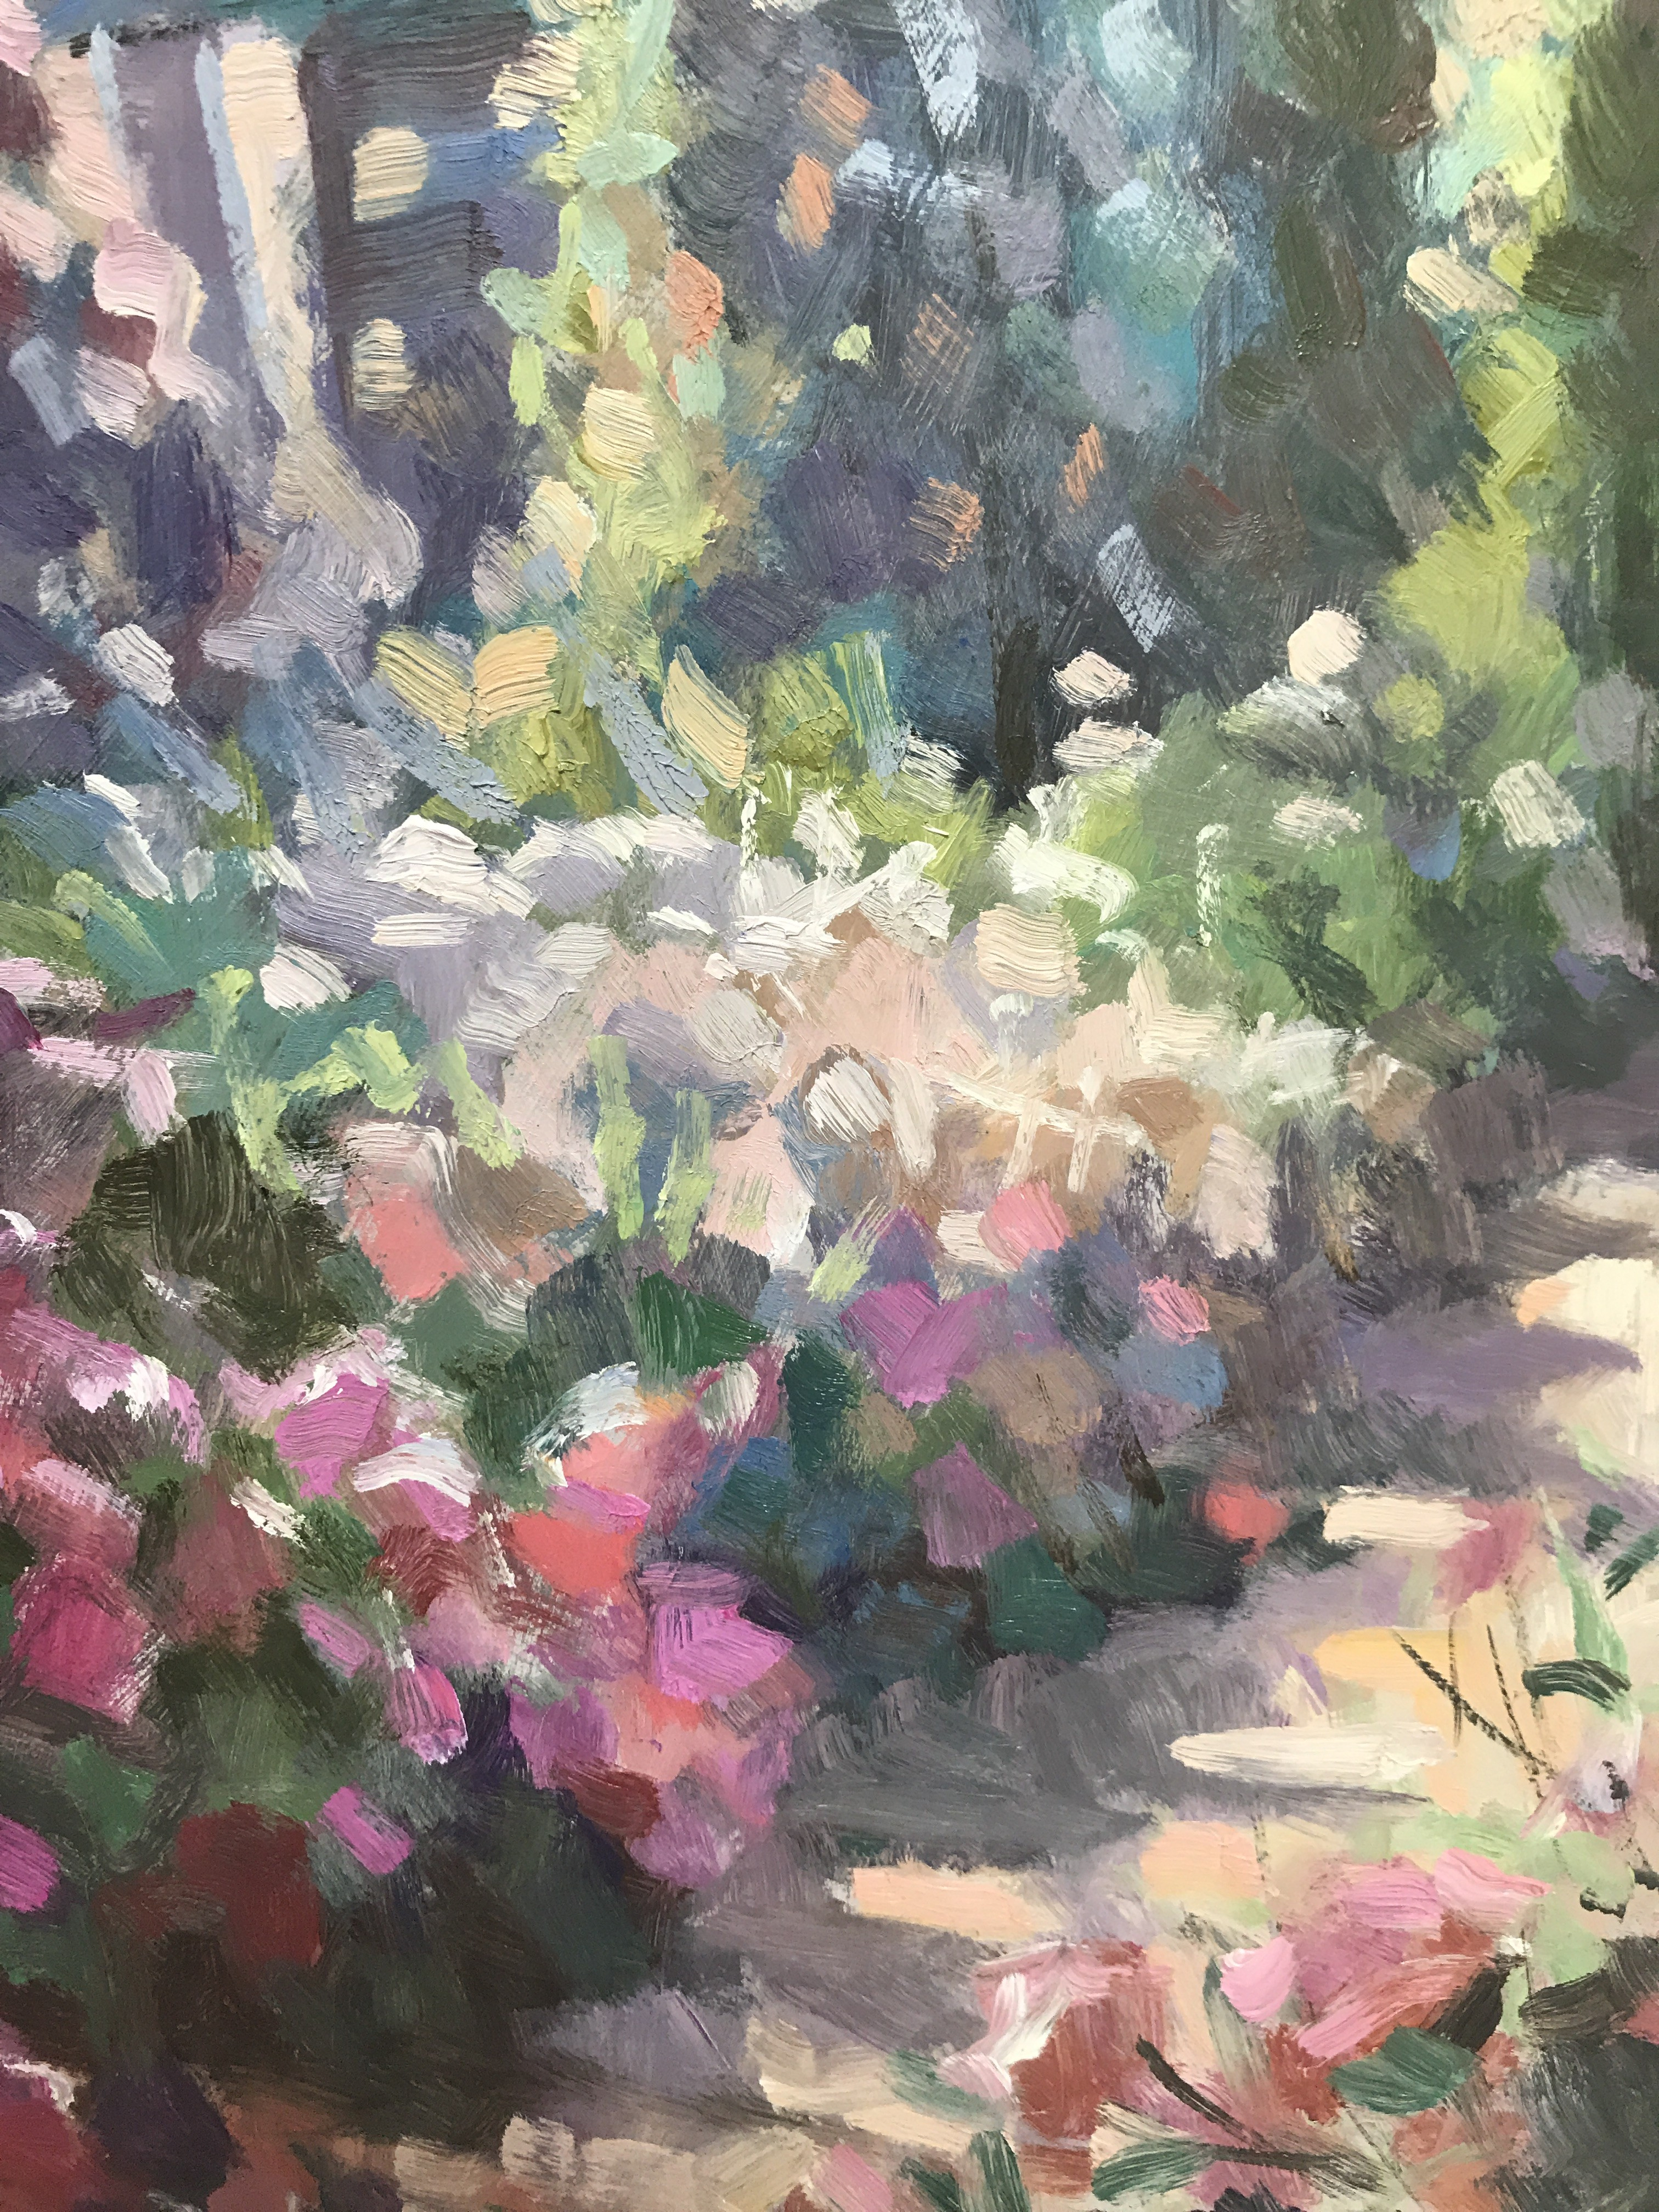 The Long Garden is an original oil painting showcasing a multitude of soft summer tones offset by some hot pink flowers in the foreground. The path and layered frame draws you into the piece further.